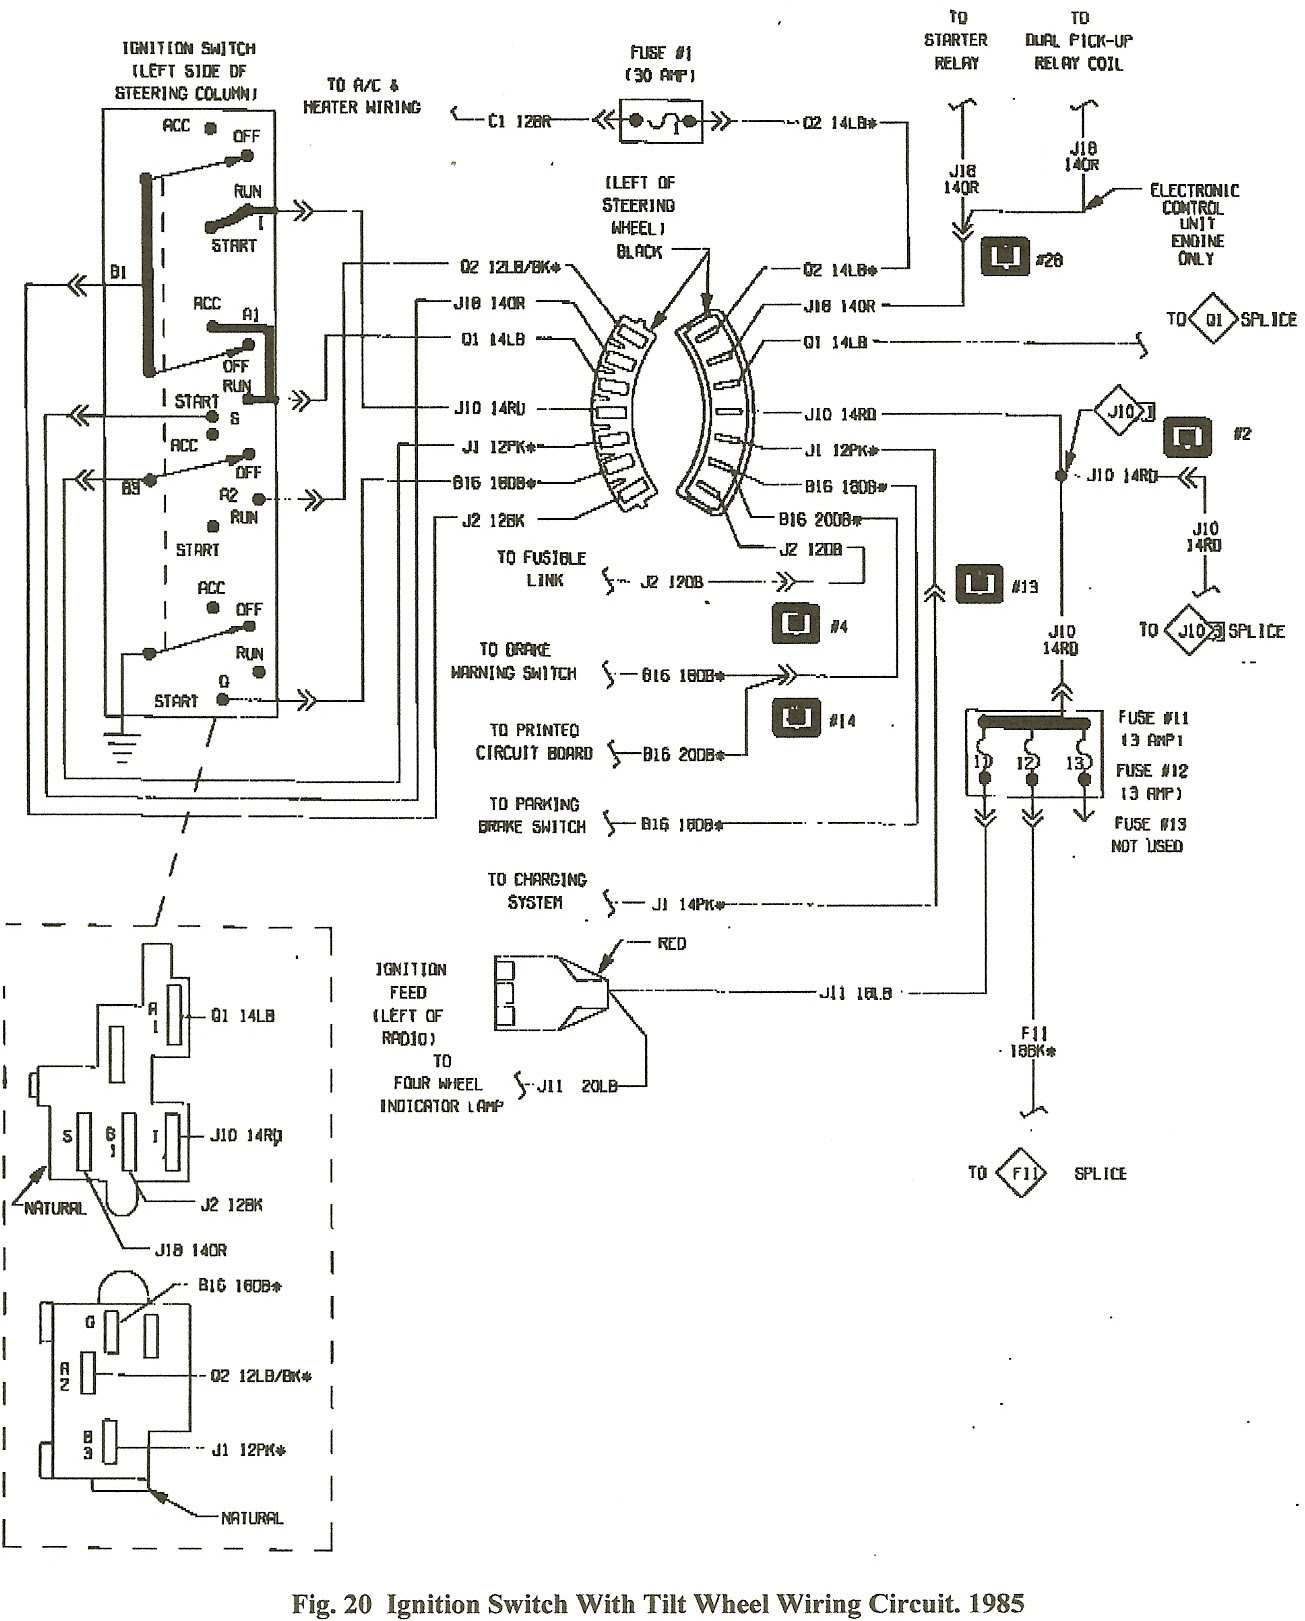 1985 Dodge Ram 1500 Fuse Box Diagram Mcculloch Fuel Filter Source Auto3 Tukune Jeanjaures37 Fr